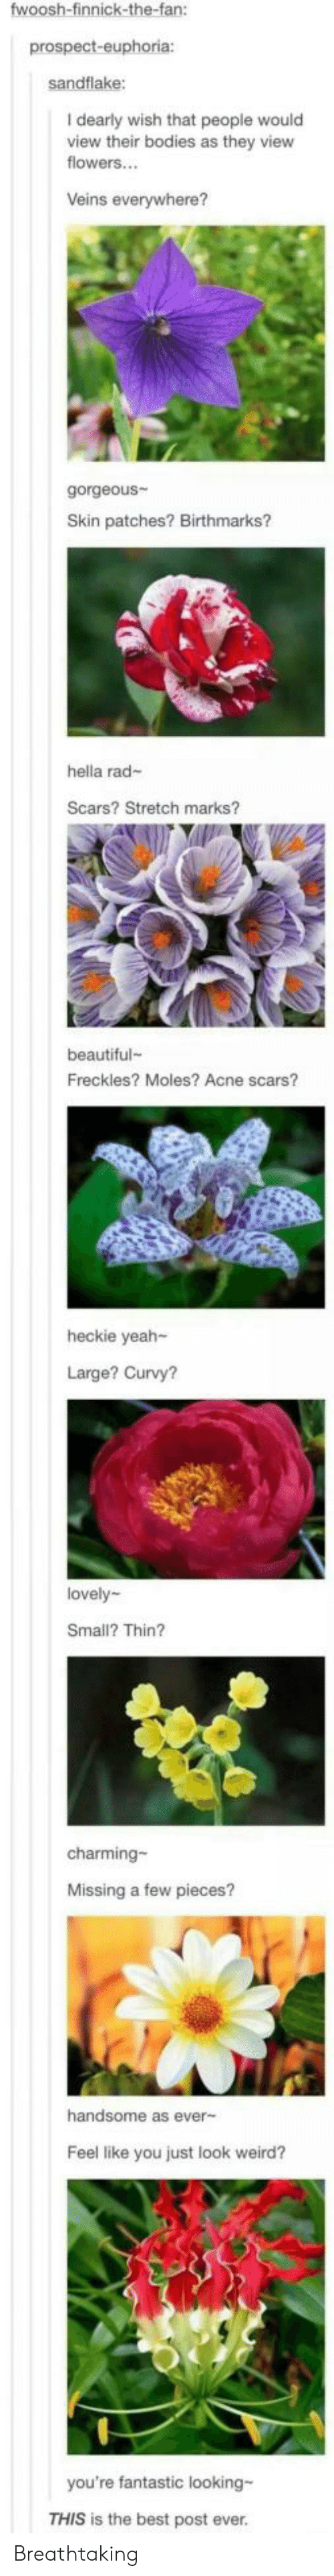 Bodies : fwoosh-finnick-the-fan:  prospect-euphoria:  sandflake:  I dearly wish that people would  view their bodies as they view  flowers...  Veins everywhere?  gorgeous  Skin patches? Birthmarks?  hella rad-  Scars? Stretch marks?  beautiful  Freckles? Moles? Acne scars?  heckie yeah-  Large? Curvy?  lovely  Small? Thin?  charming-  Missing a few pieces?  handsome as ever-  Feel like you just look weird?  you're fantastic looking-  THIS is the best post ever. Breathtaking